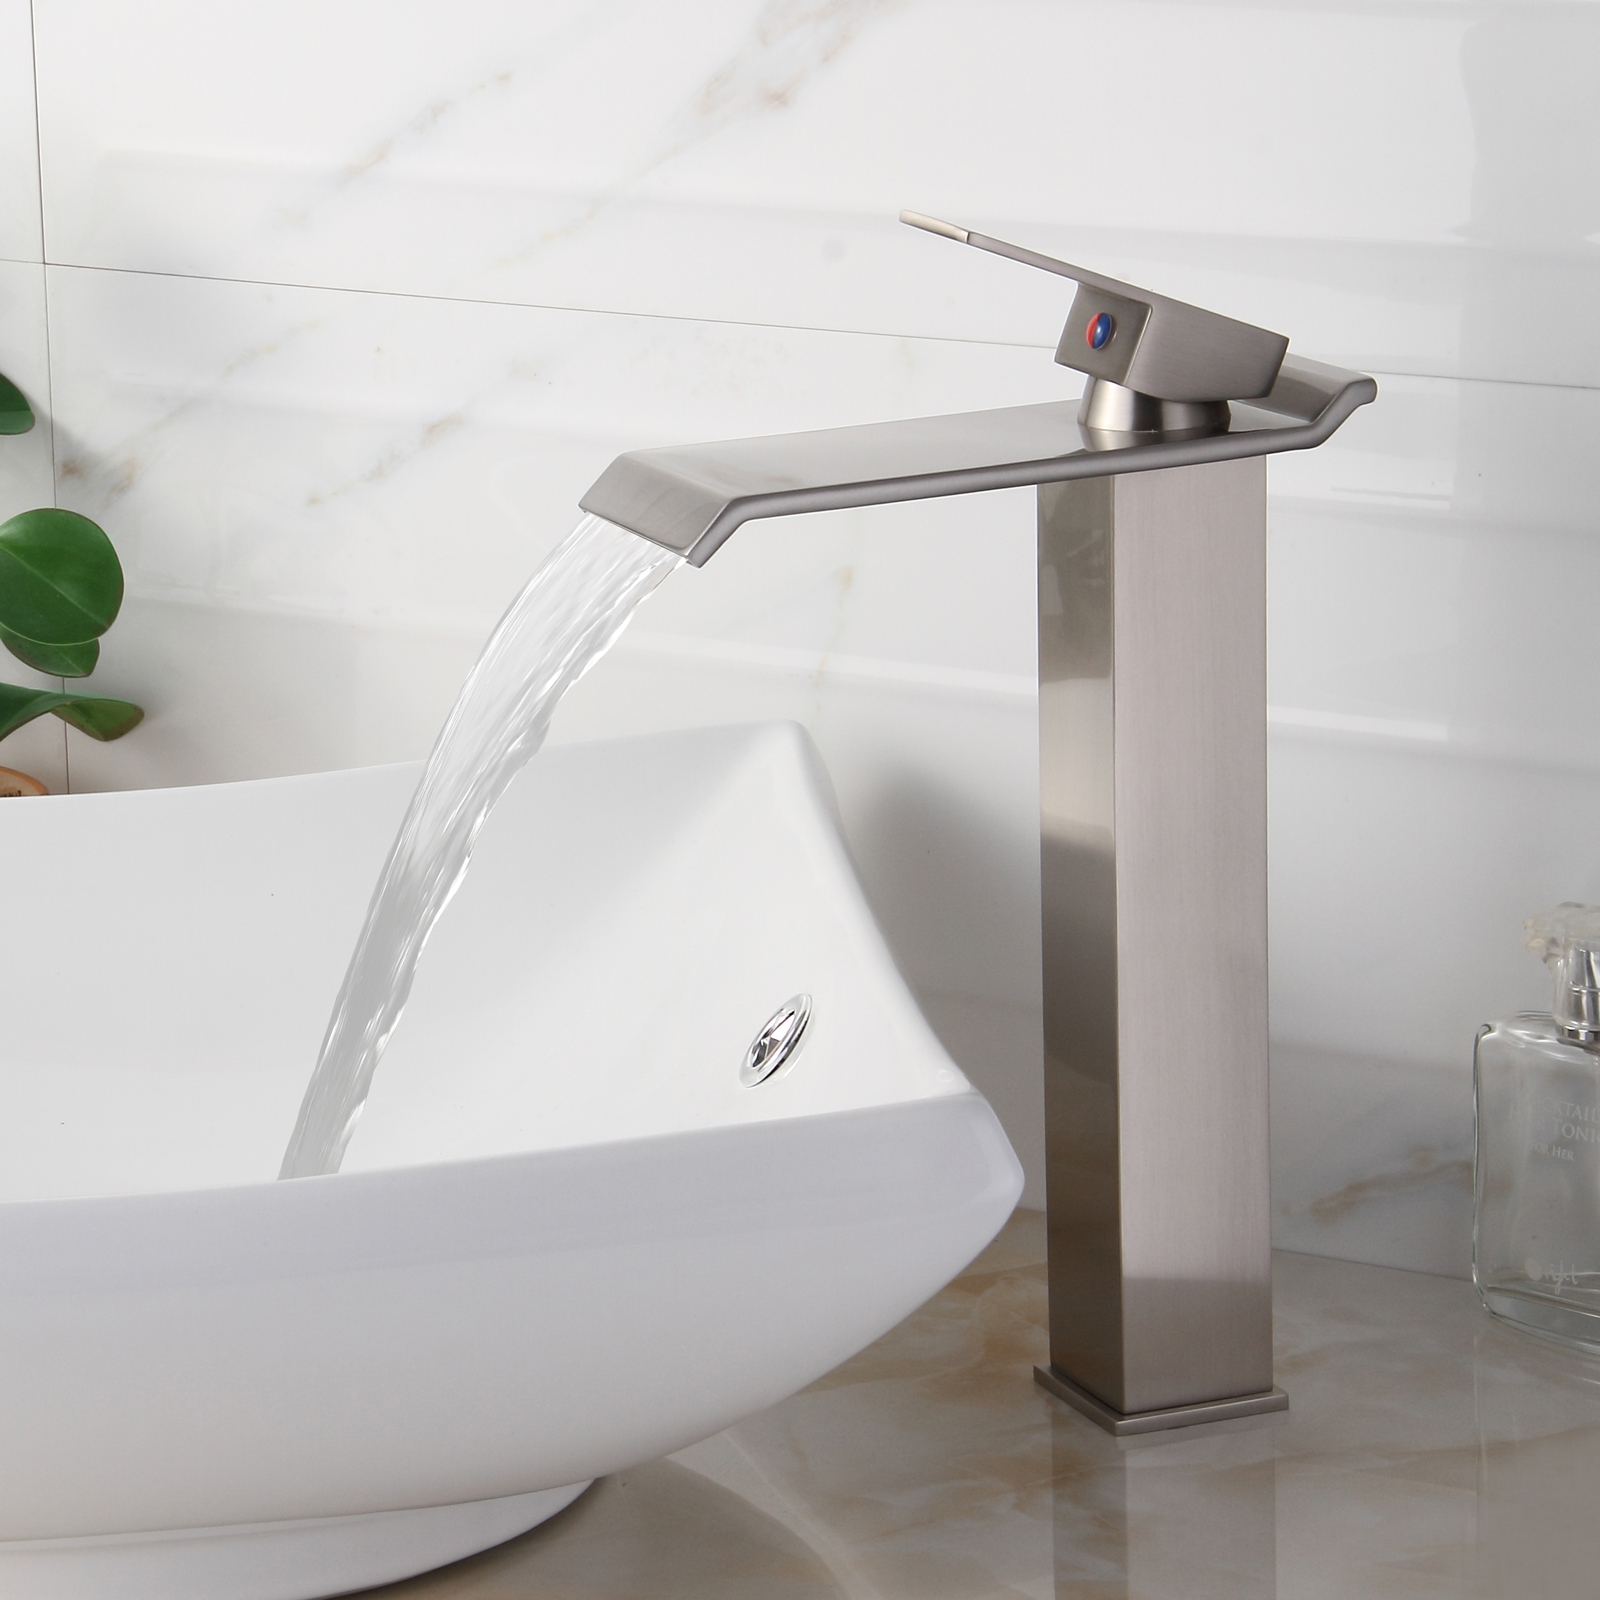 Ideas, bathroom fabulous waterfall faucet for bathroom intended for dimensions 1600 x 1600  .